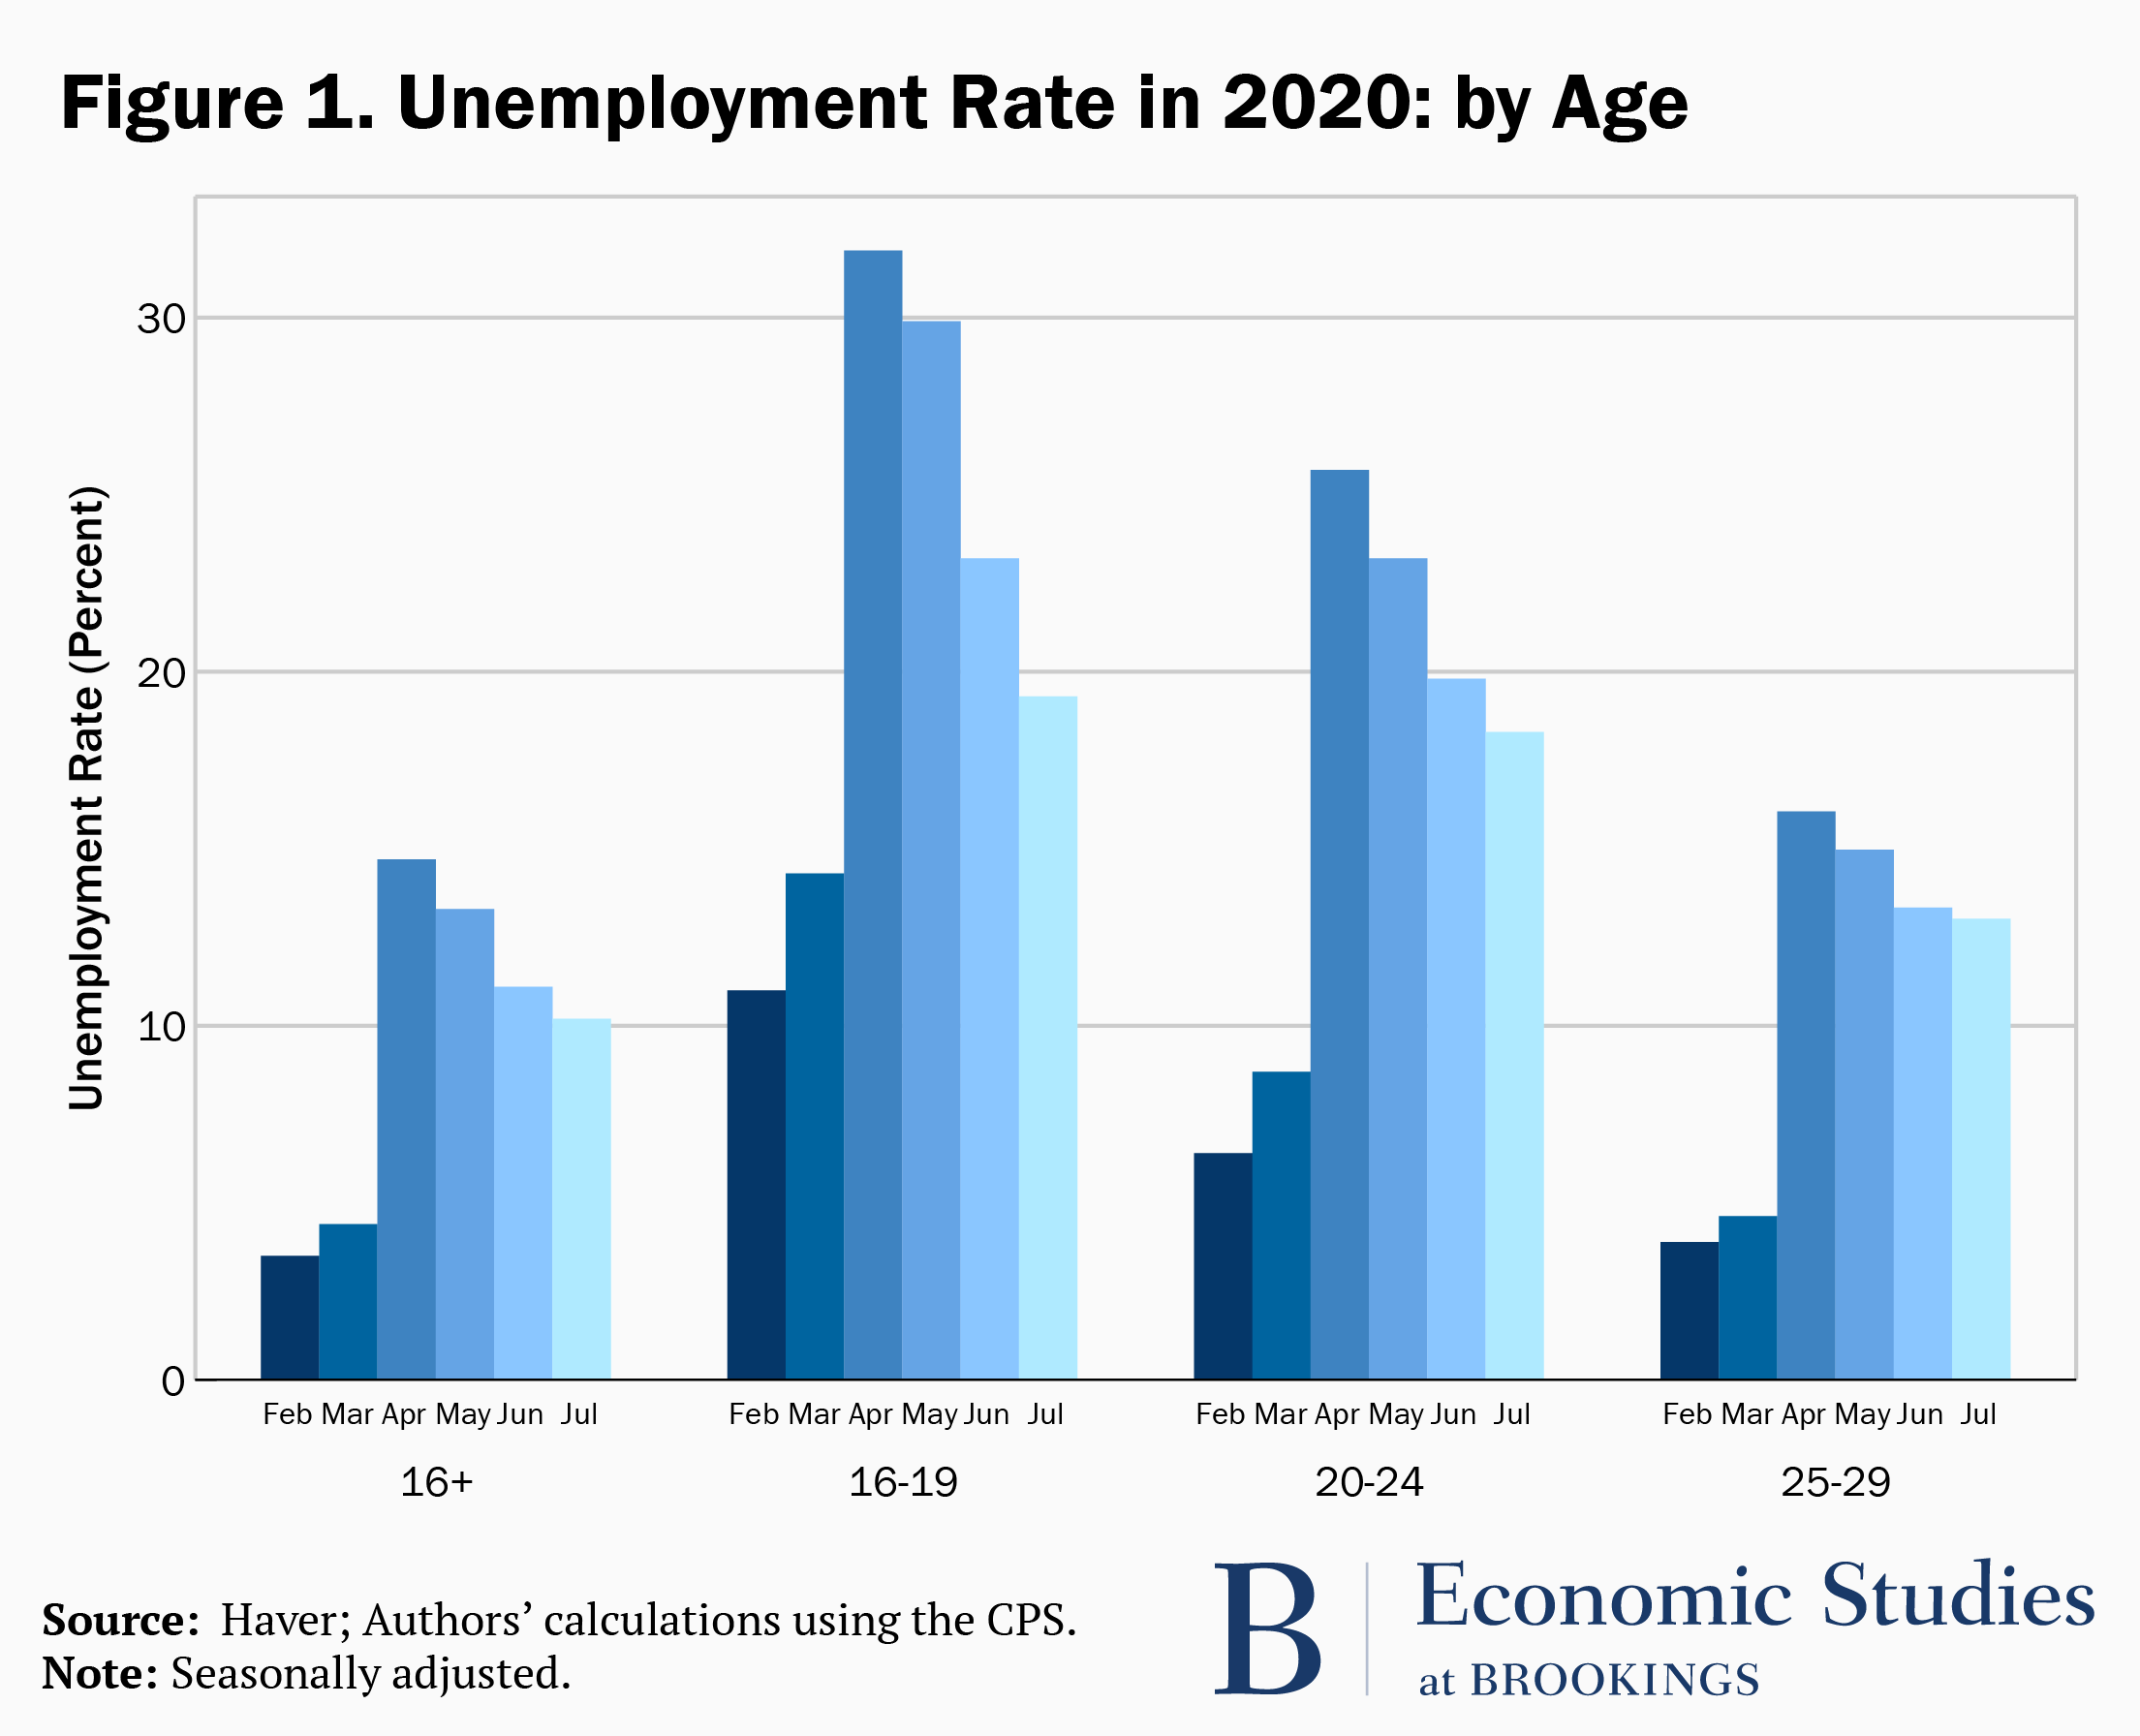 Unemployment rate by age